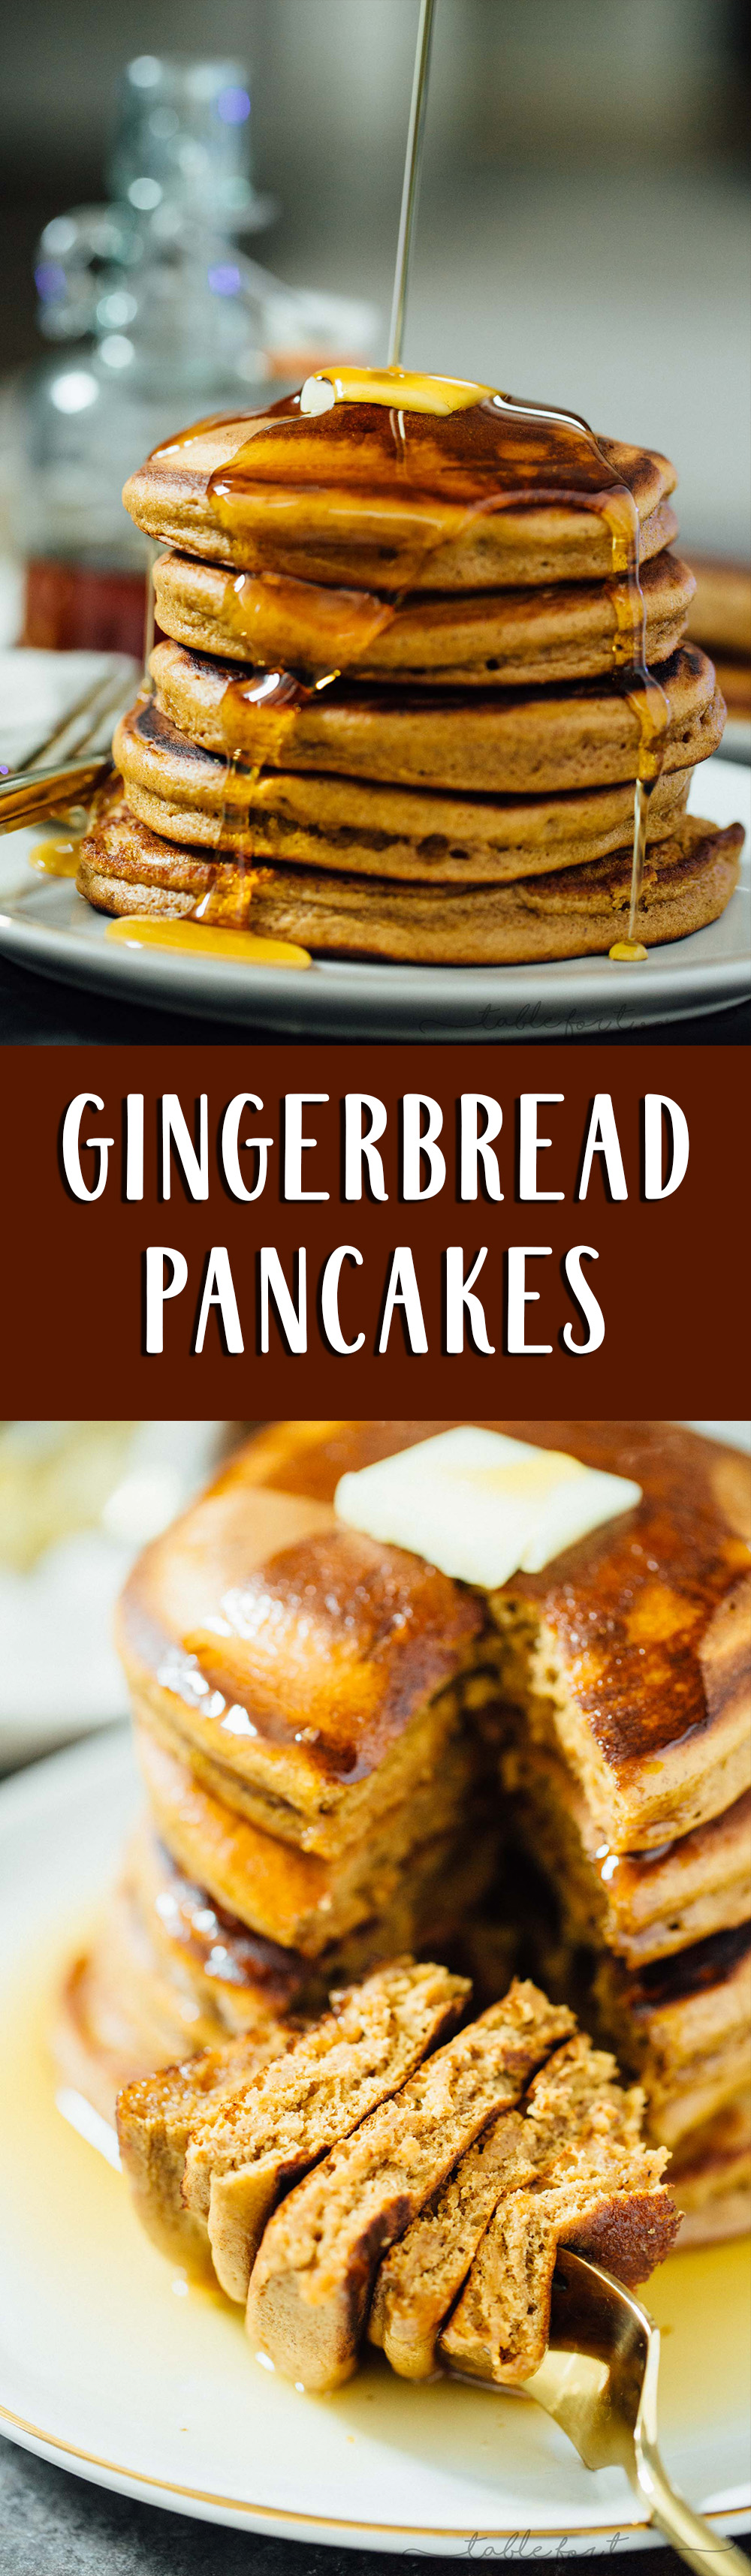 Fluffy and full of gingerbread flavor, these gingerbread pancakes are the perfect breakfast or brunch item to have on hand!